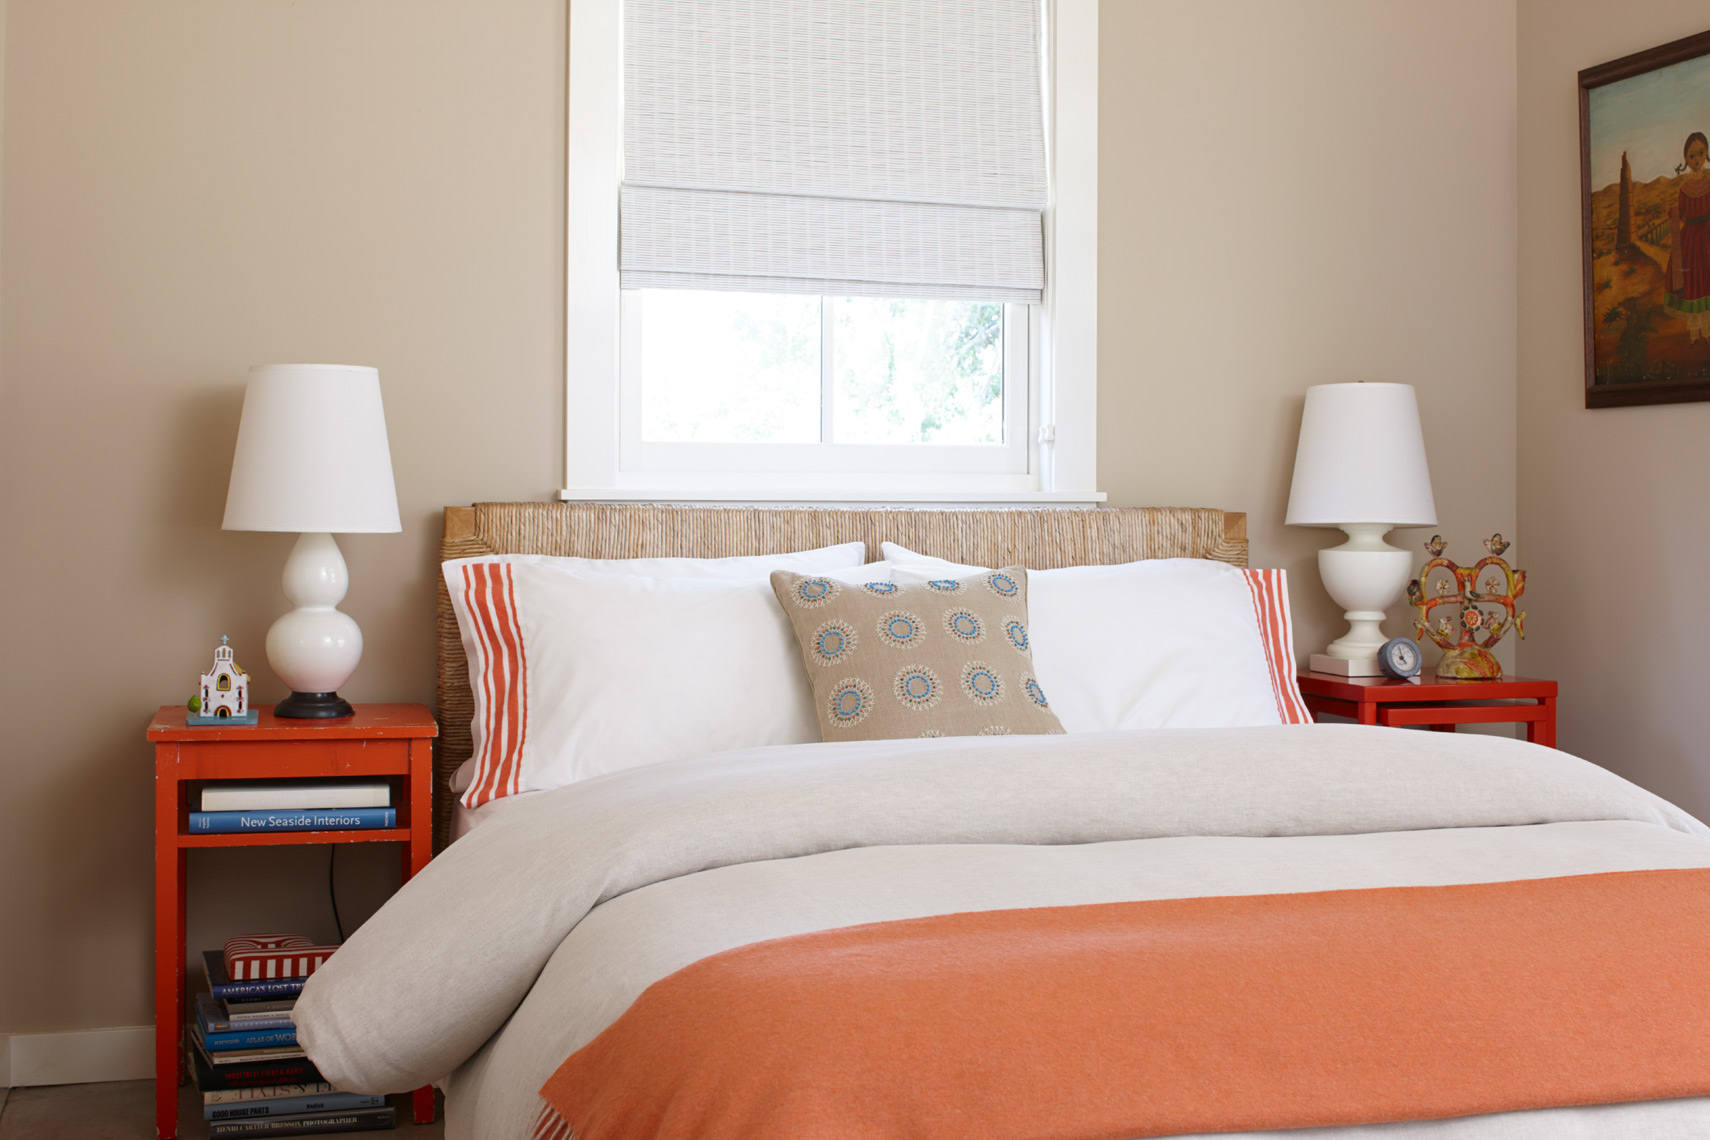 bedroom with orange and white bedspread with red bedside tables and white lamps